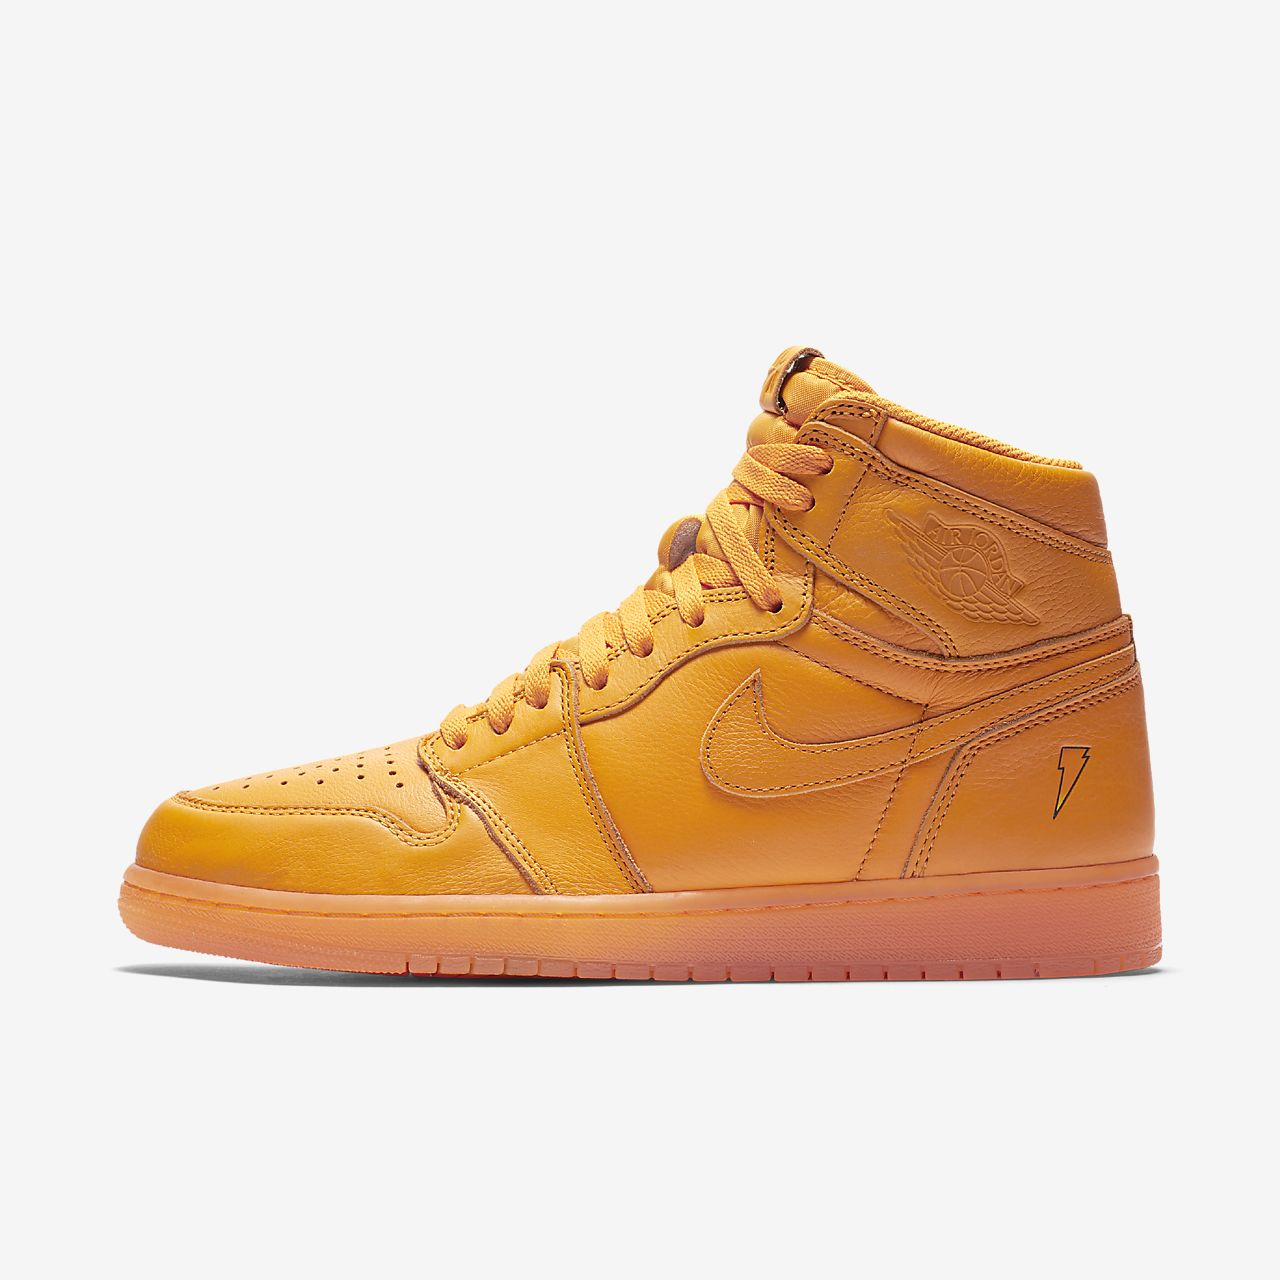 Air Jordan 1 Retro High OG 'Orange' ...